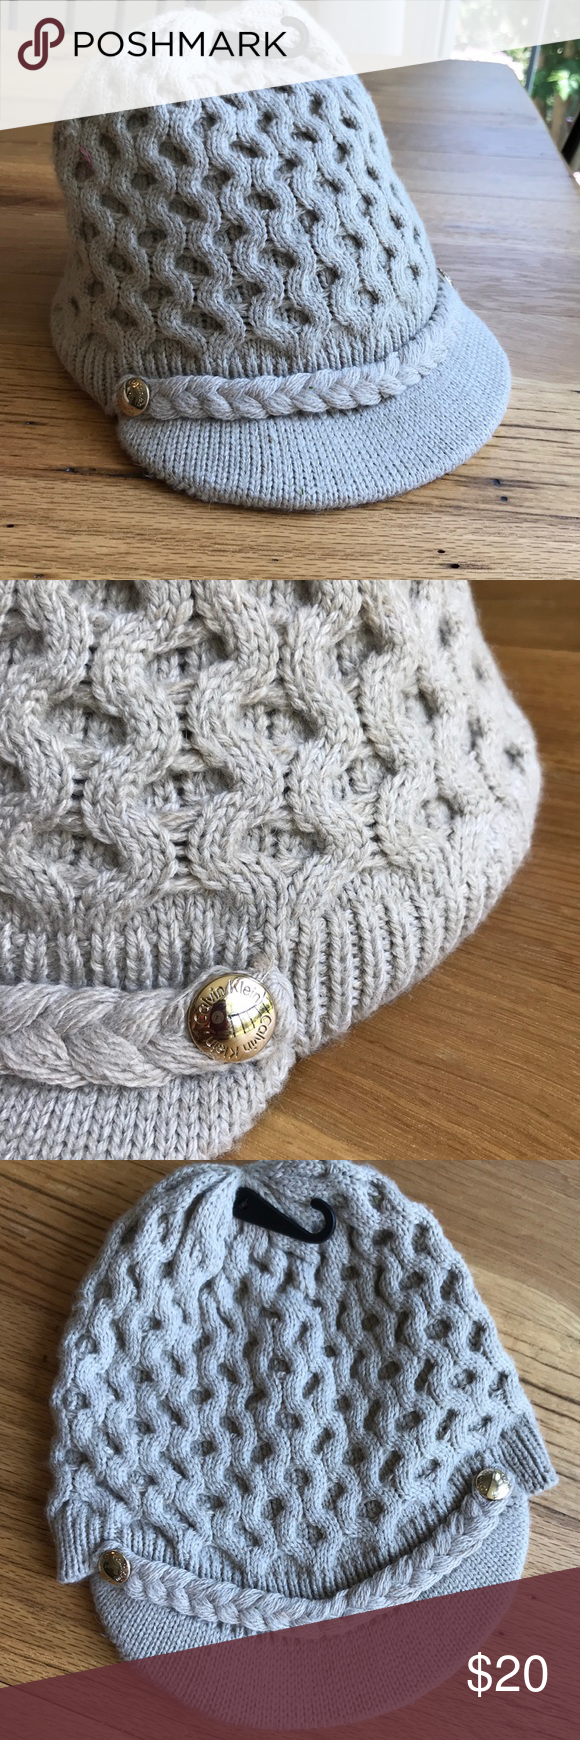 fbe3351aca0 Calvin Klein cable knit hat with visor. Wool blend. Light tan. Gold button.  Machine wash cold. Very cute and versatile! Calvin Klein Accessories Hats.  NWOT!